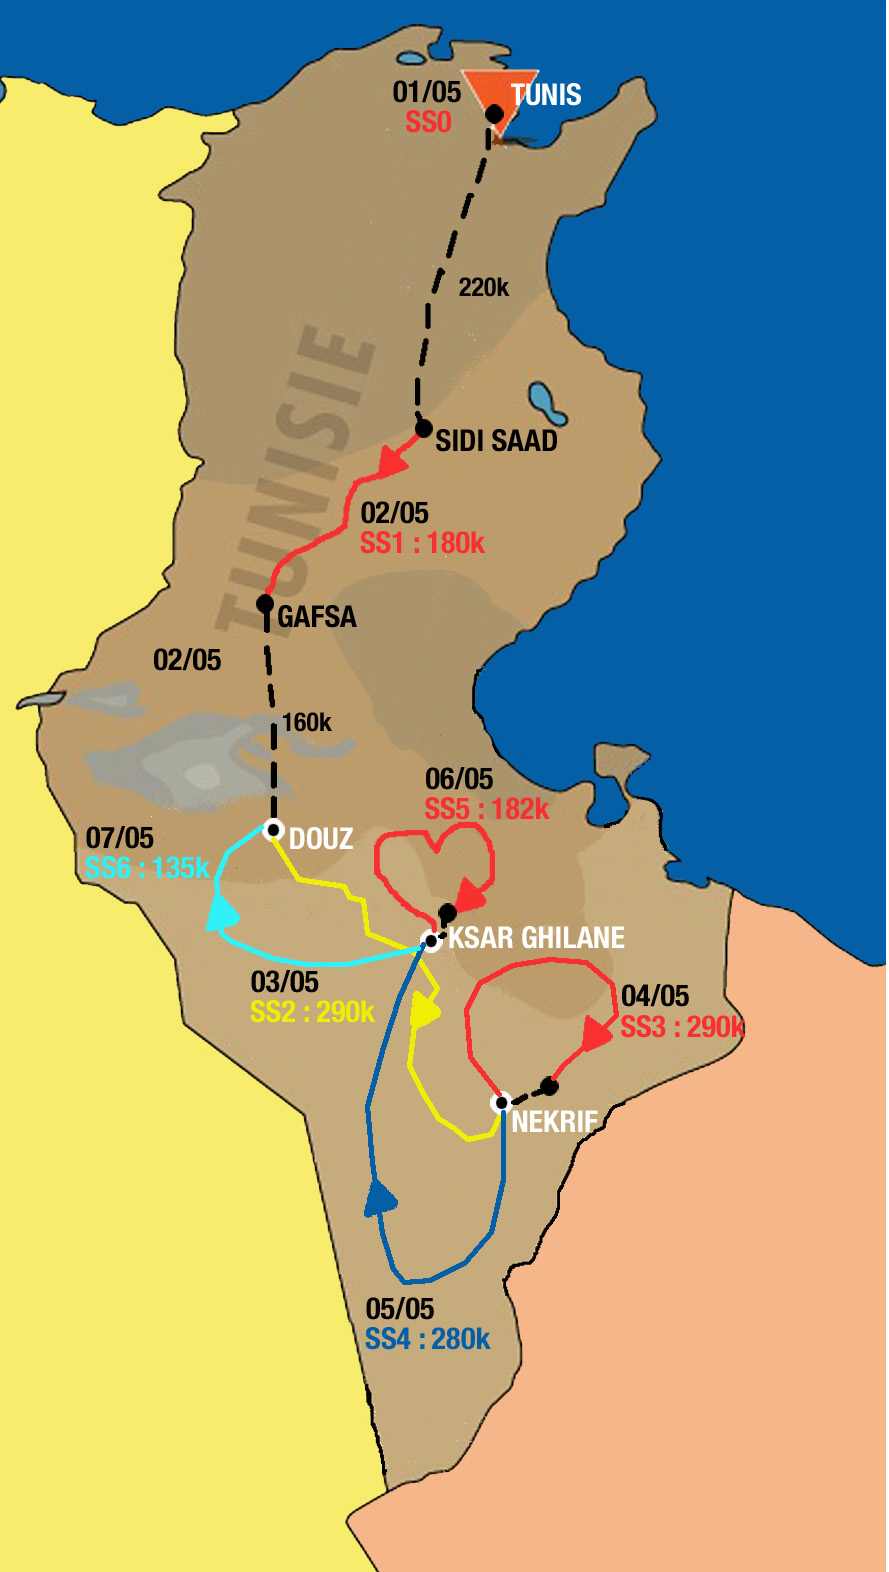 Tunisia 2010 Map